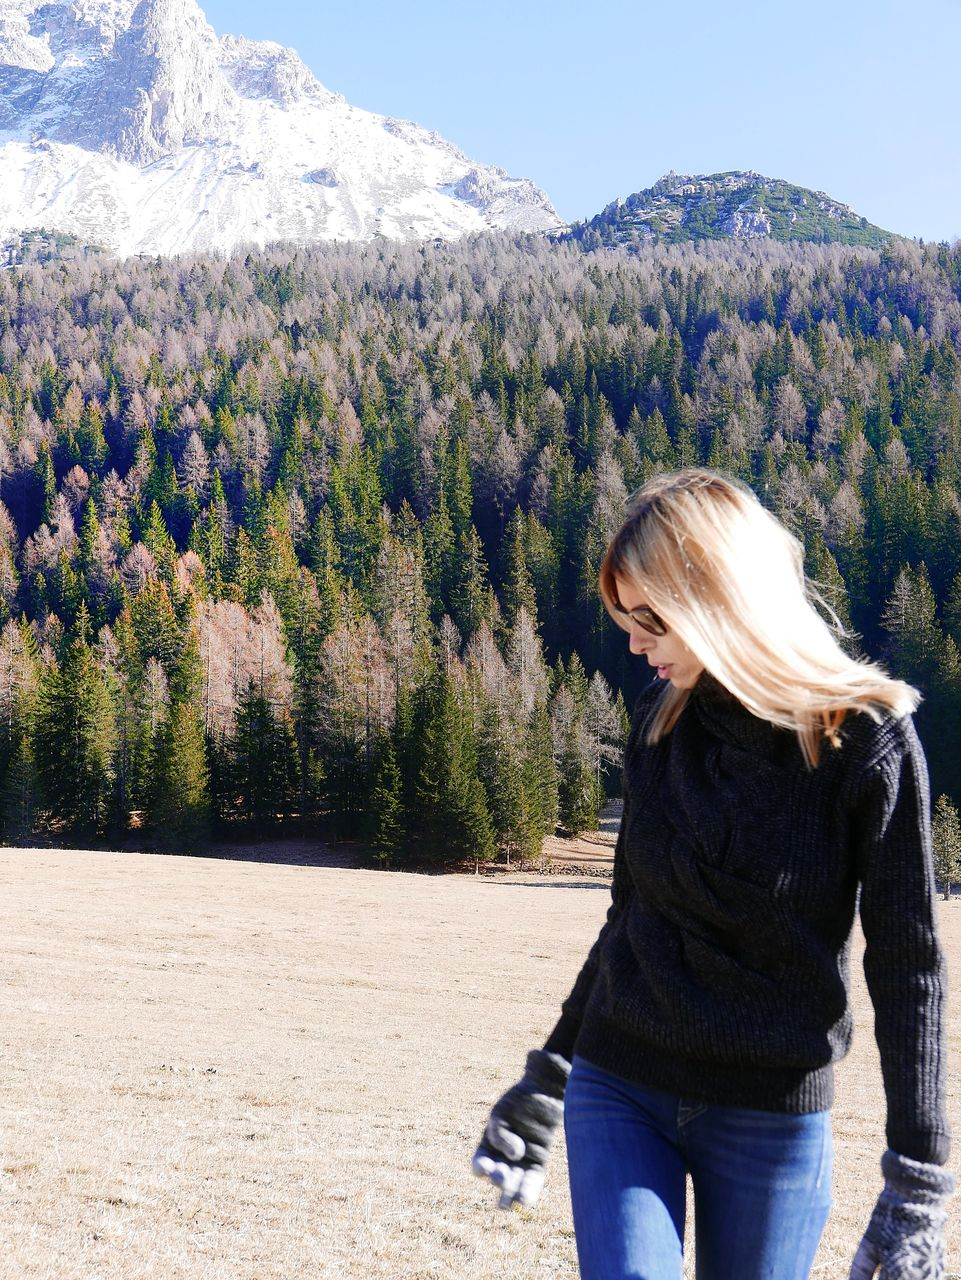 Young woman standing on mountain against sky